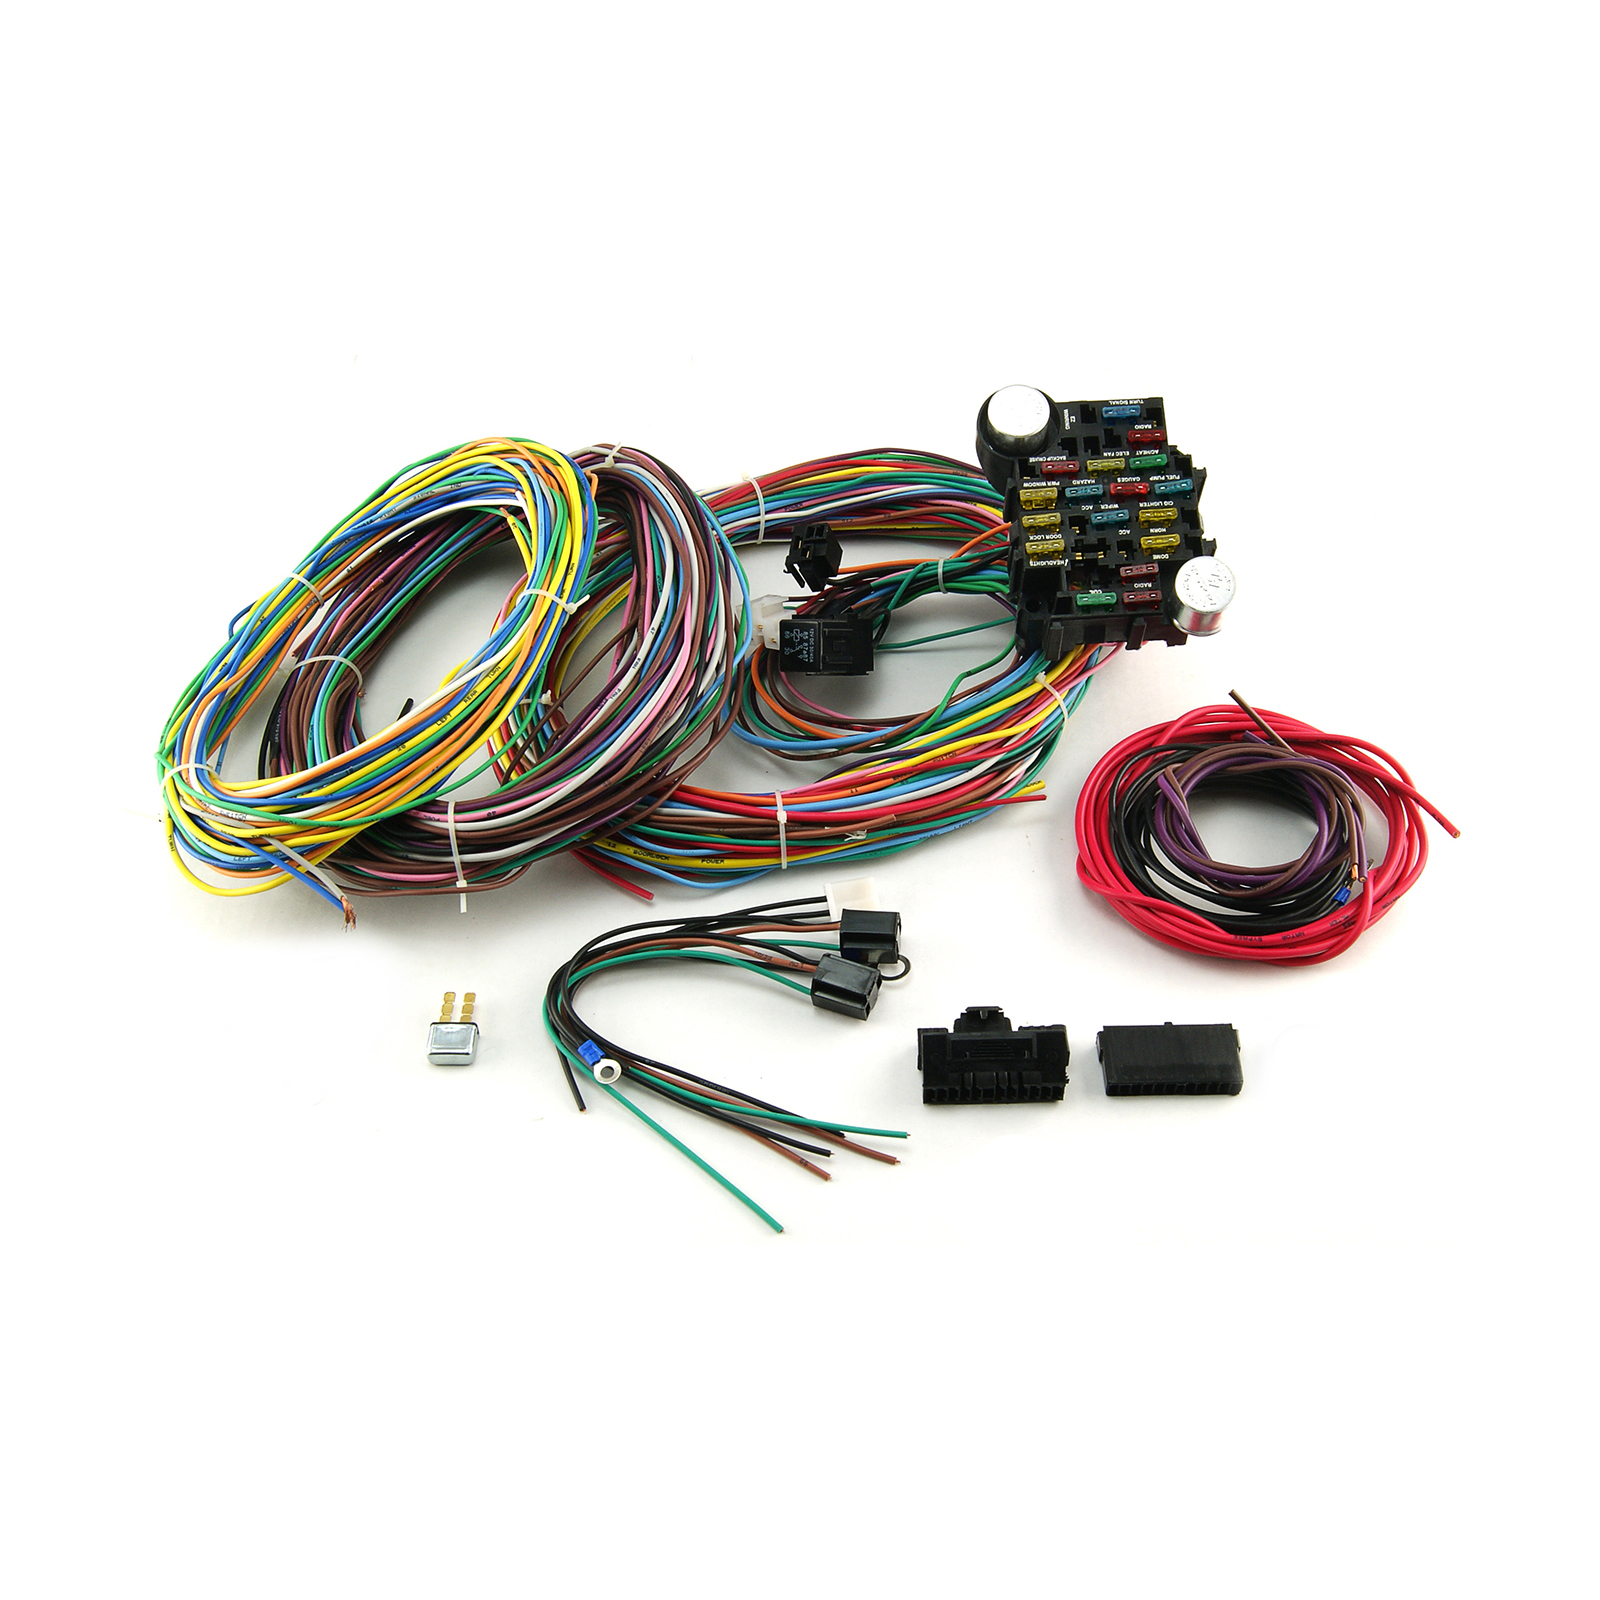 Universal Wiring Harness Kit Diagrams Street Rod 22 Circuit Ebay Jegs Electric Fan Automotive Repair Kits